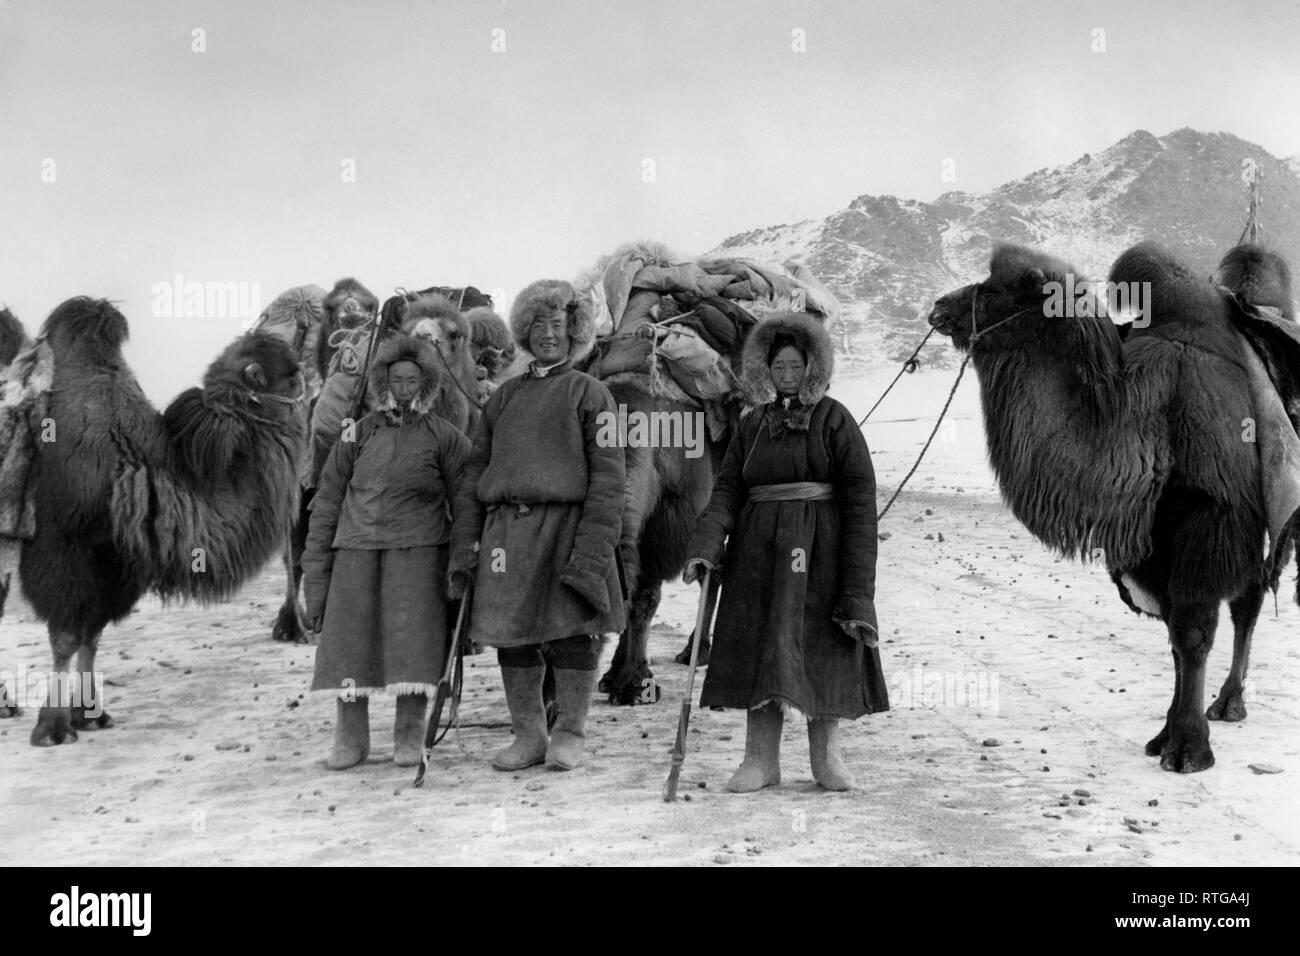 asia, mongolia, cameleers in the desert, 1958 - Stock Image